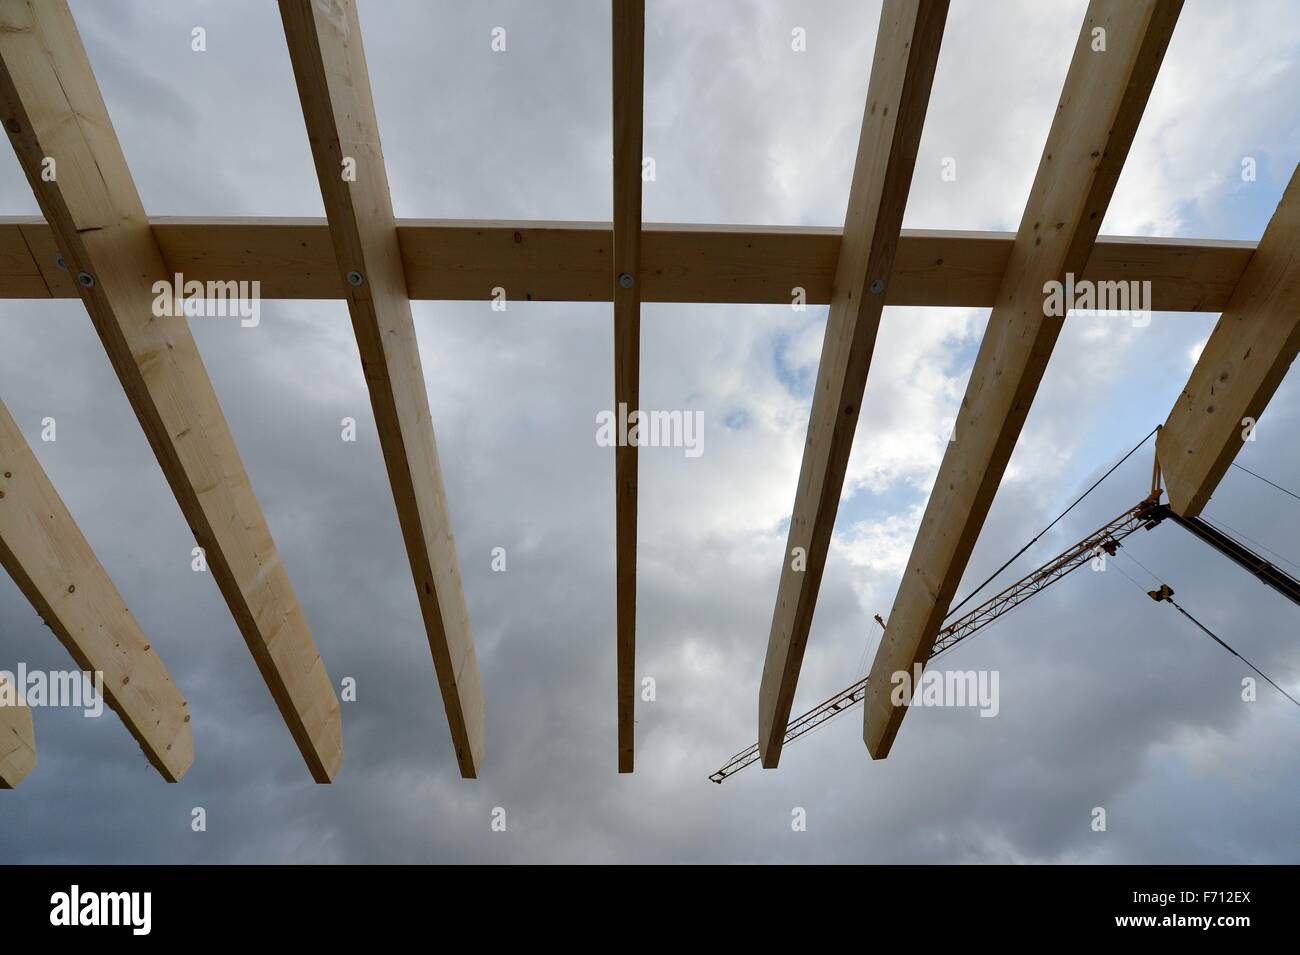 Construction area for a private house, Germany, near the city of Seesen 19. November 2015. Photo: Frank May - Stock Image